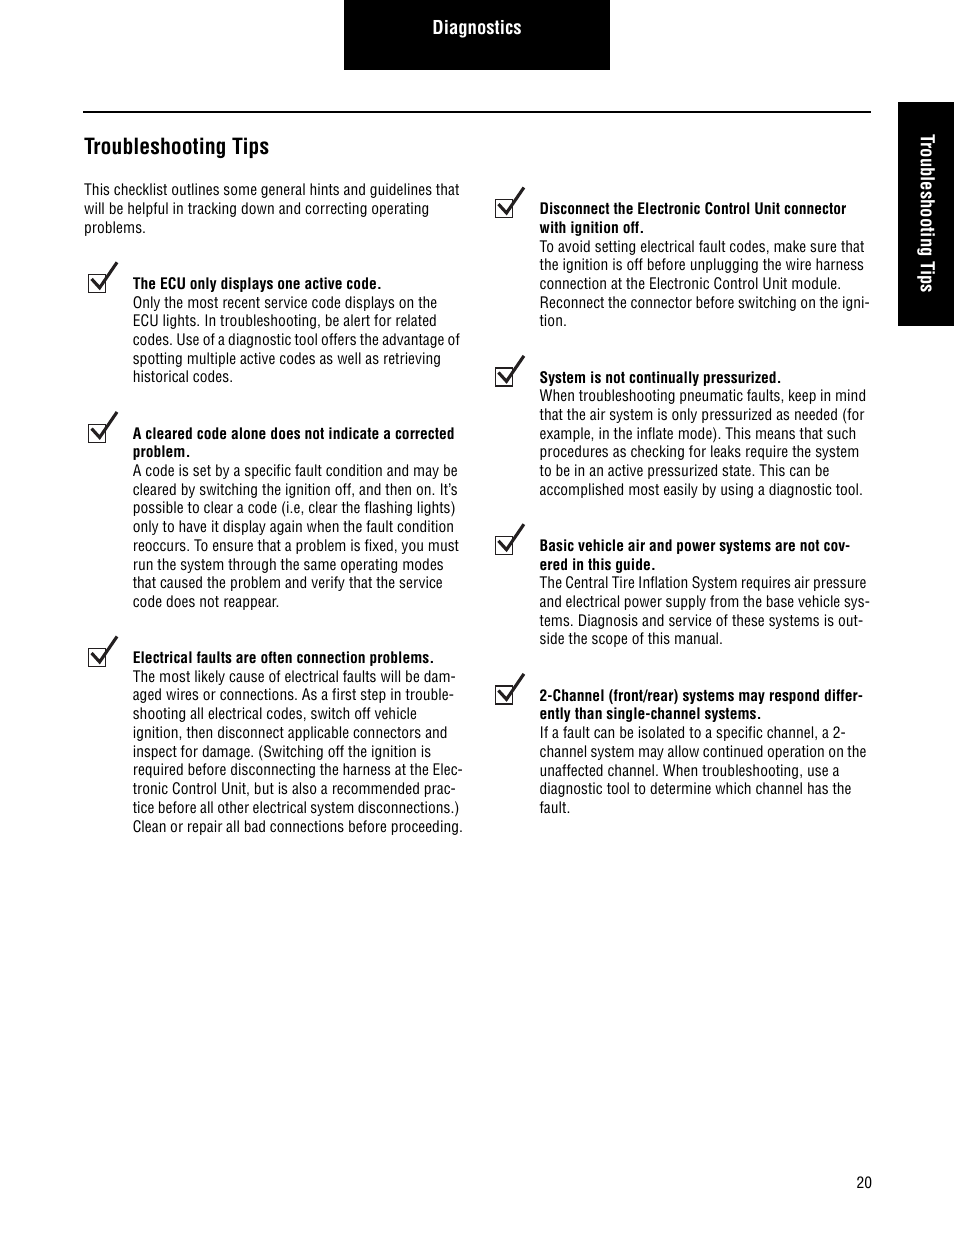 Troubleshooting tips | Spicer CTIS (Central Tire Inflation System)  Troubleshooting Guide User Manual | Page 23 / 72